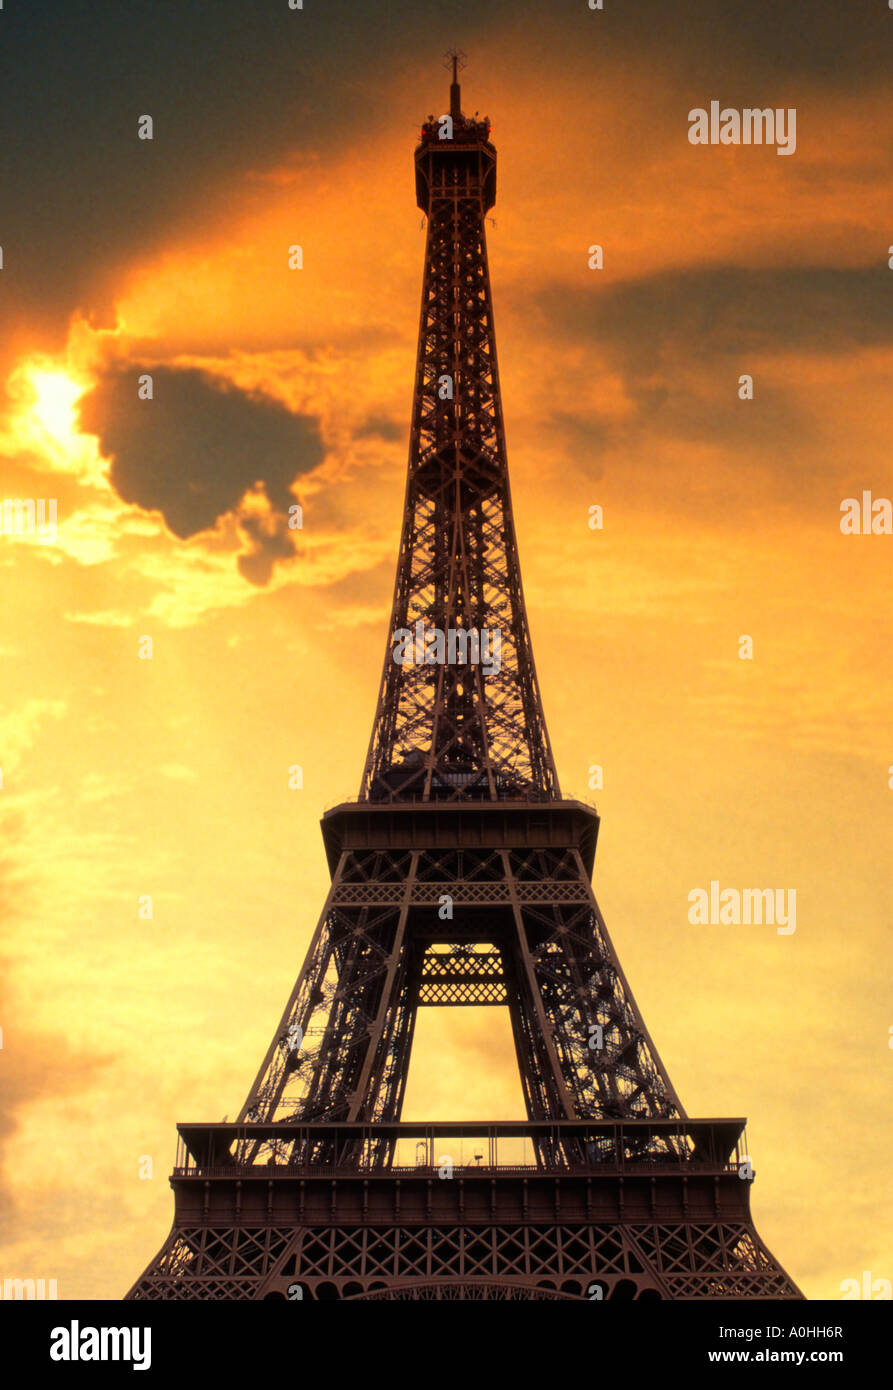 Paris Eiffel Tower at Sunset Dramatic Sky Europe France Sandra Baker - Stock Image